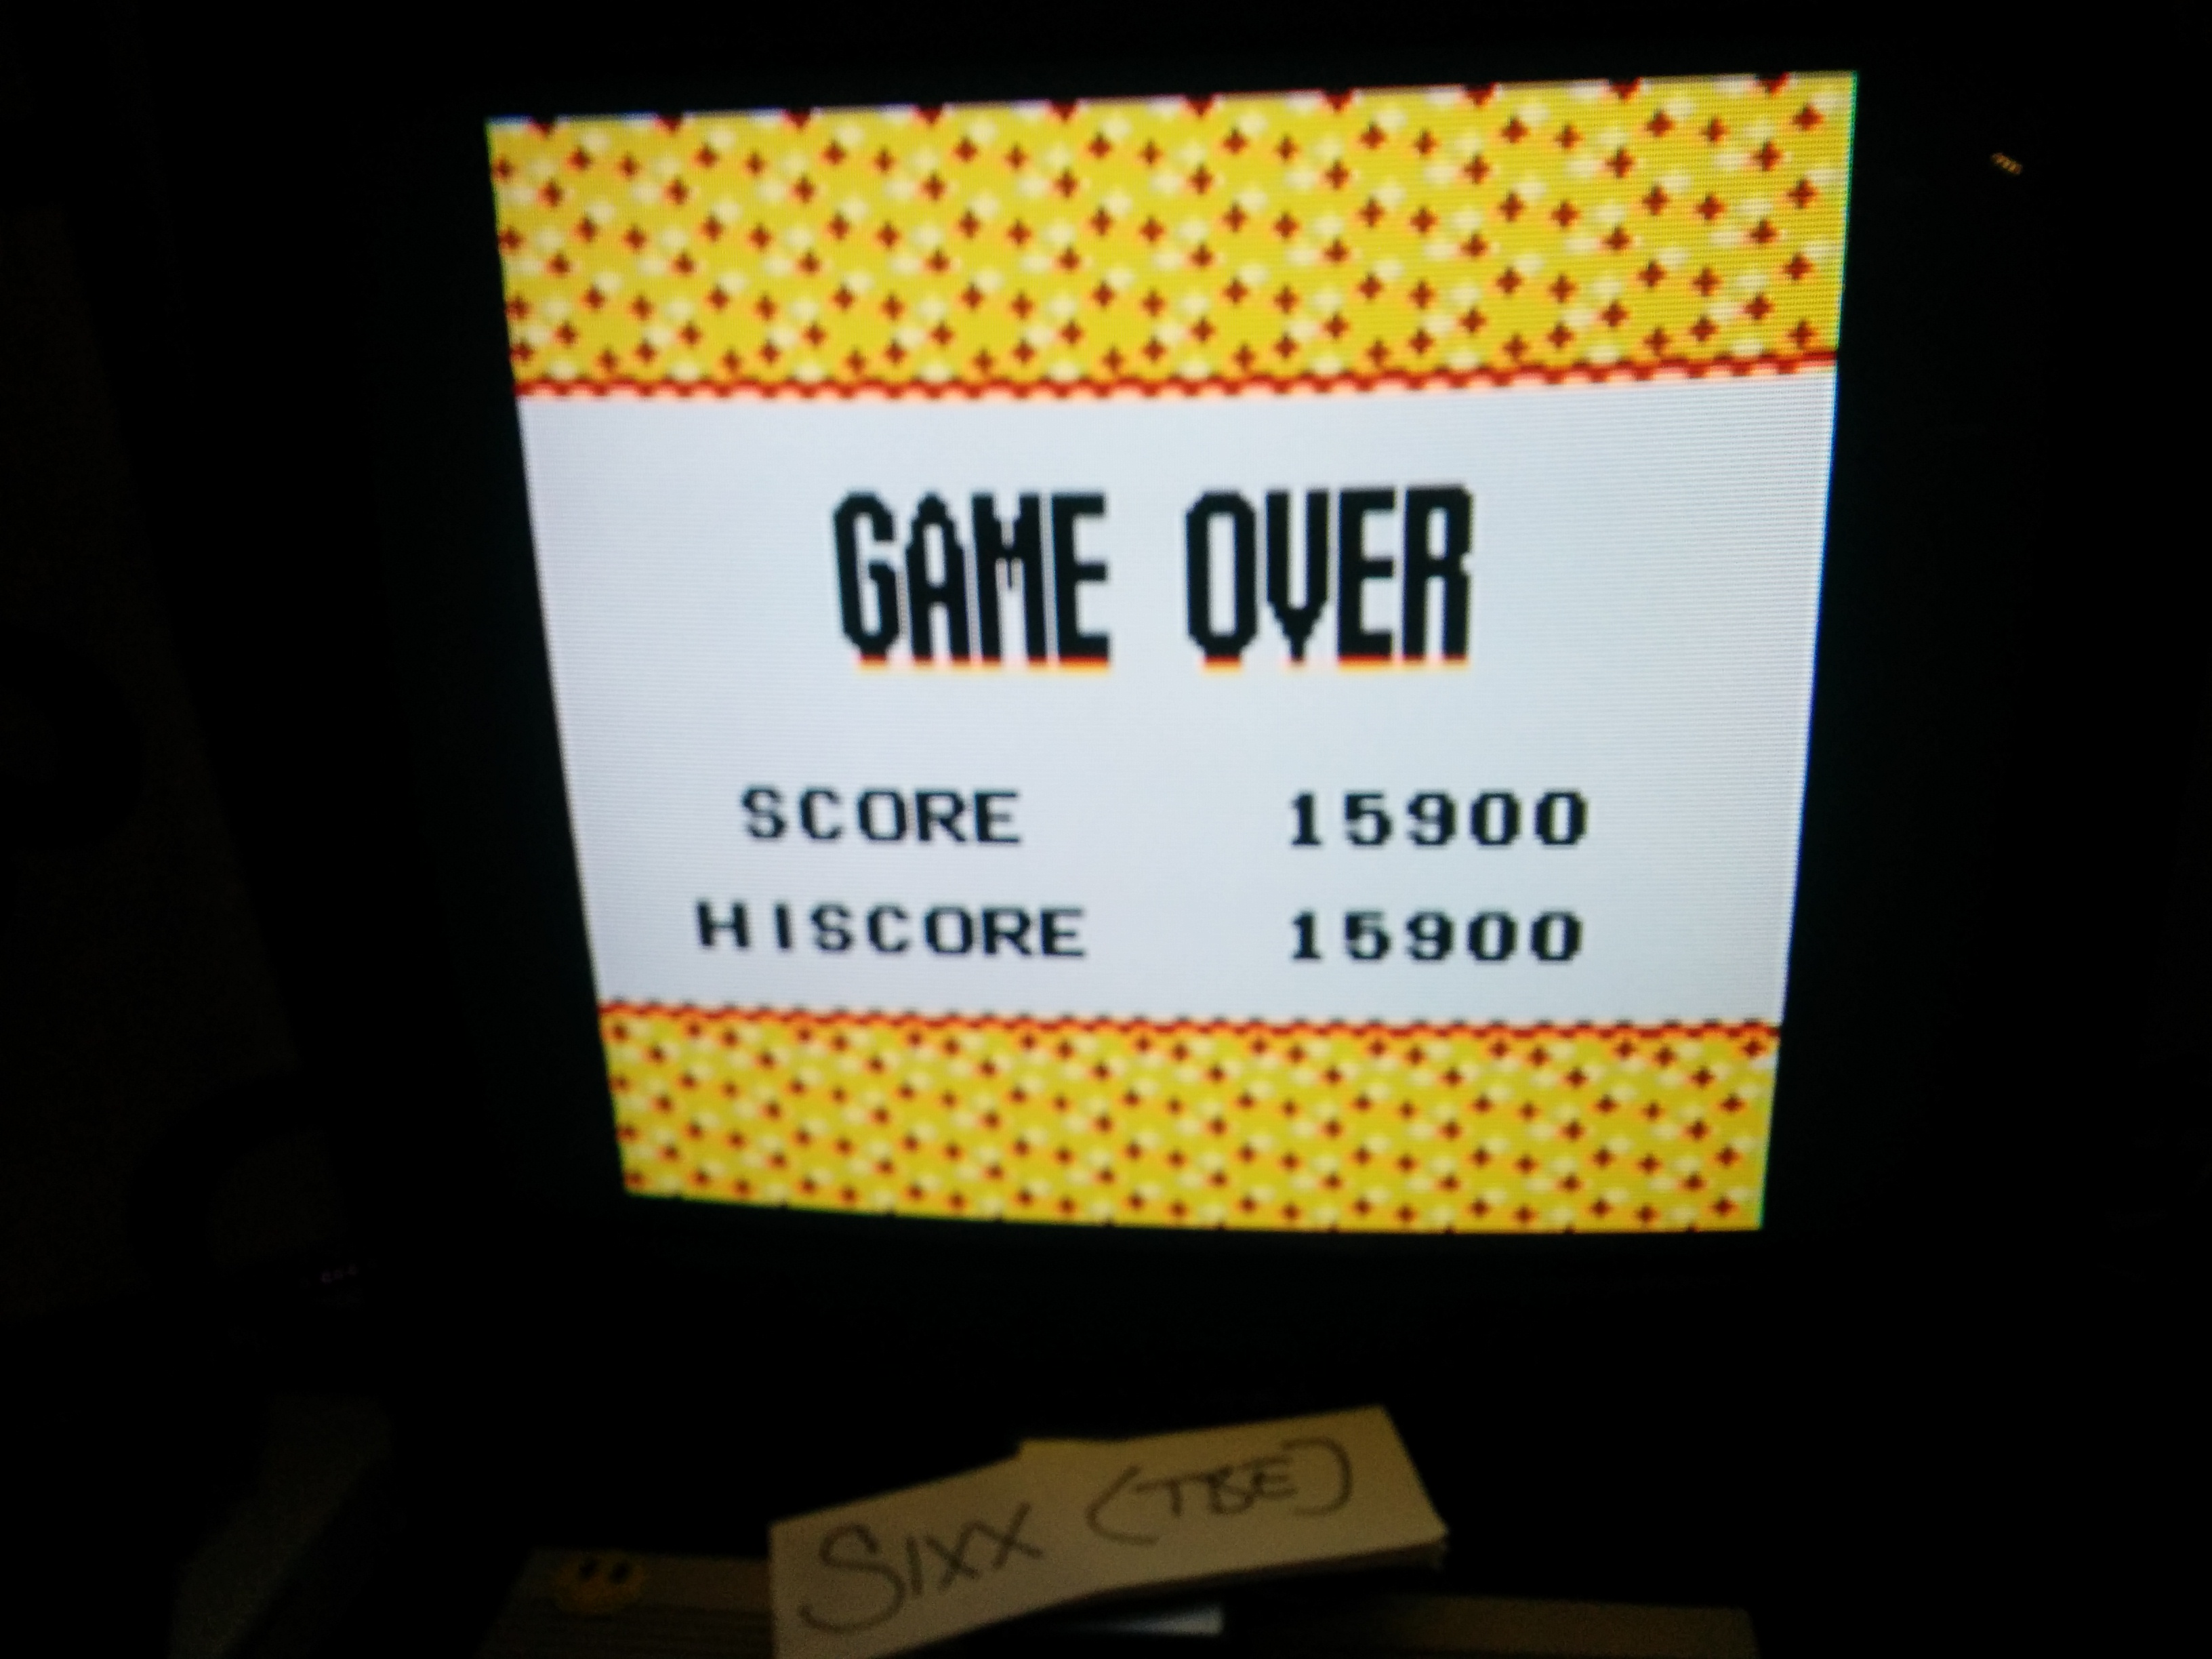 Sixx: Konami GB Collection Vol. 2: Frogger (Game Boy Color Emulated) 15,900 points on 2014-08-04 17:56:09